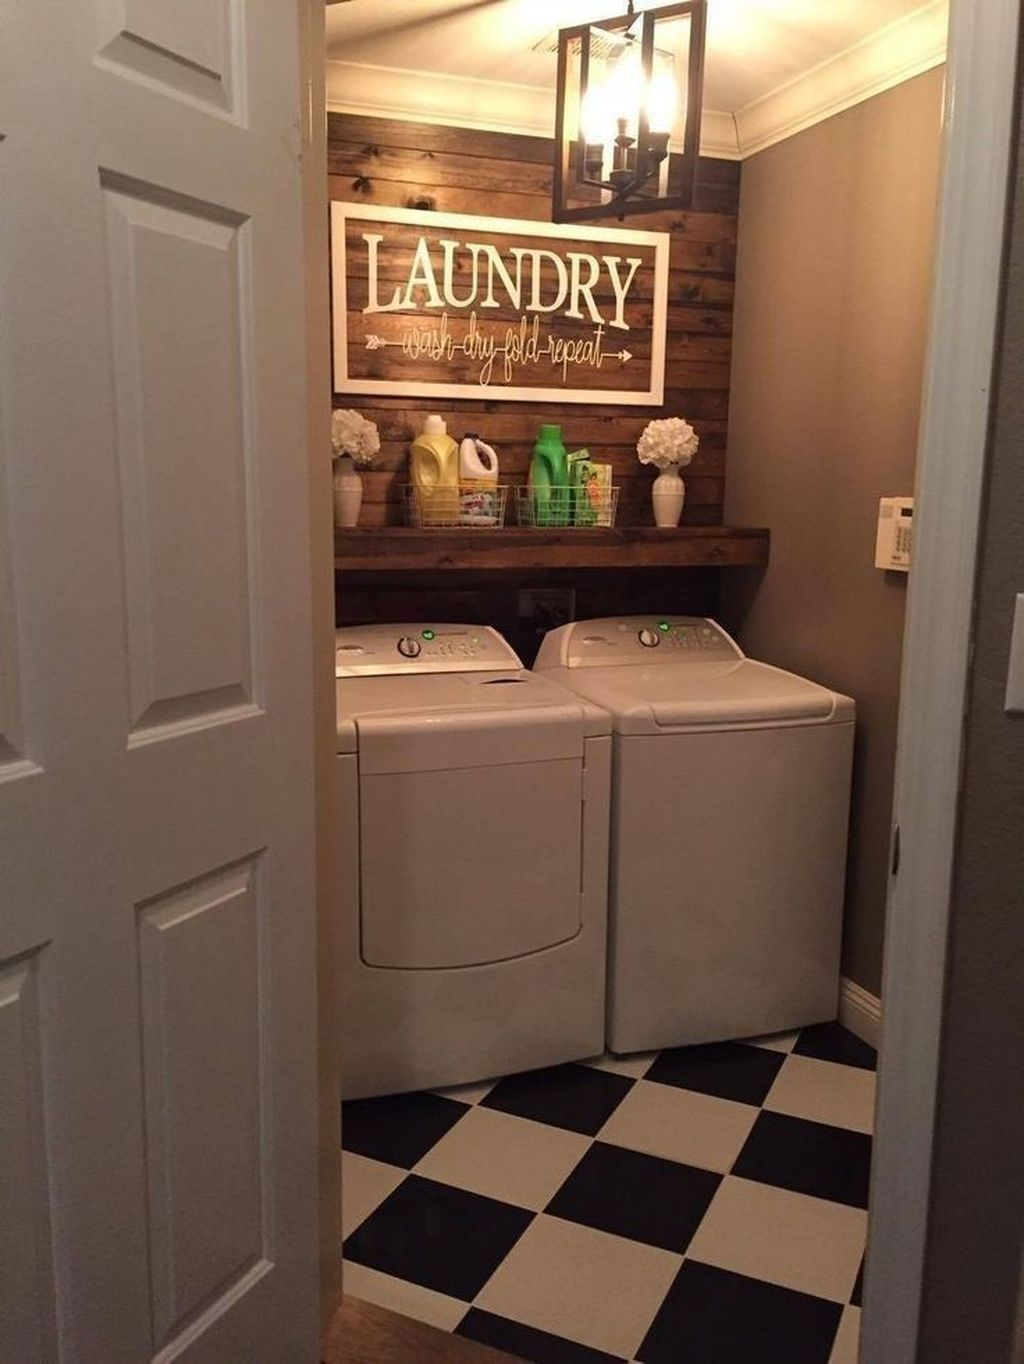 Lovely Rustic Laundry Room Decor Ideas -  Lovely Rustic Laundry Room Decor Ideas  - #Decor #ideas #laundry #LaundryRoom #laundryroomdecor #laundryroomideas #Lovely #room #Rustic #organizedlaundryrooms Lovely Rustic Laundry Room Decor Ideas -  Lovely Rustic Laundry Room Decor Ideas  - #Decor #ideas #laundry #LaundryRoom #laundryroomdecor #laundryroomideas #Lovely #room #Rustic